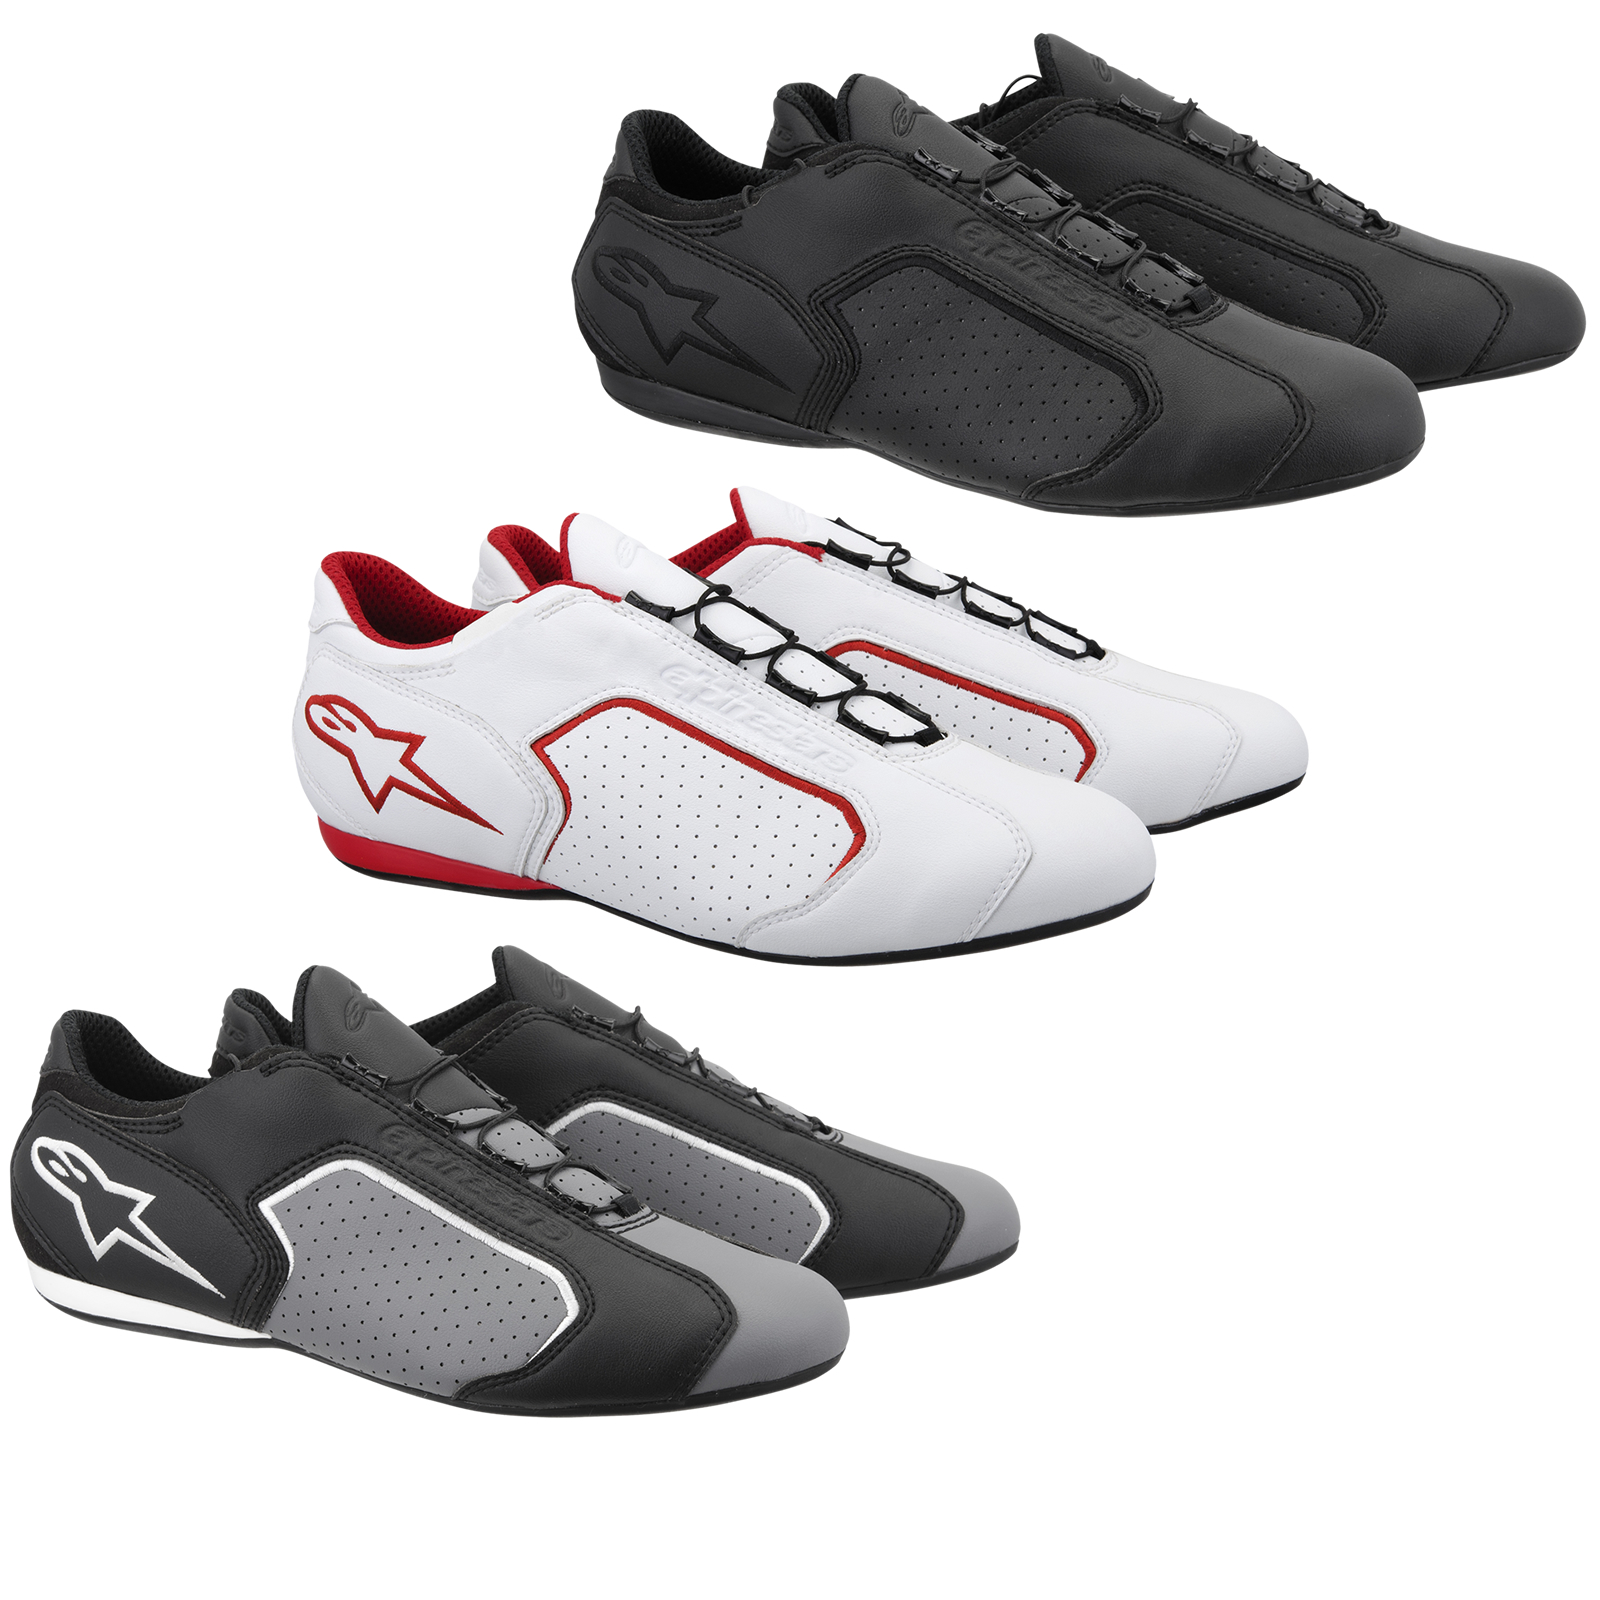 Alpine Motorcycle Gear >> Alpinestars Montreal Sport Shoes - Boots - Ghostbikes.com